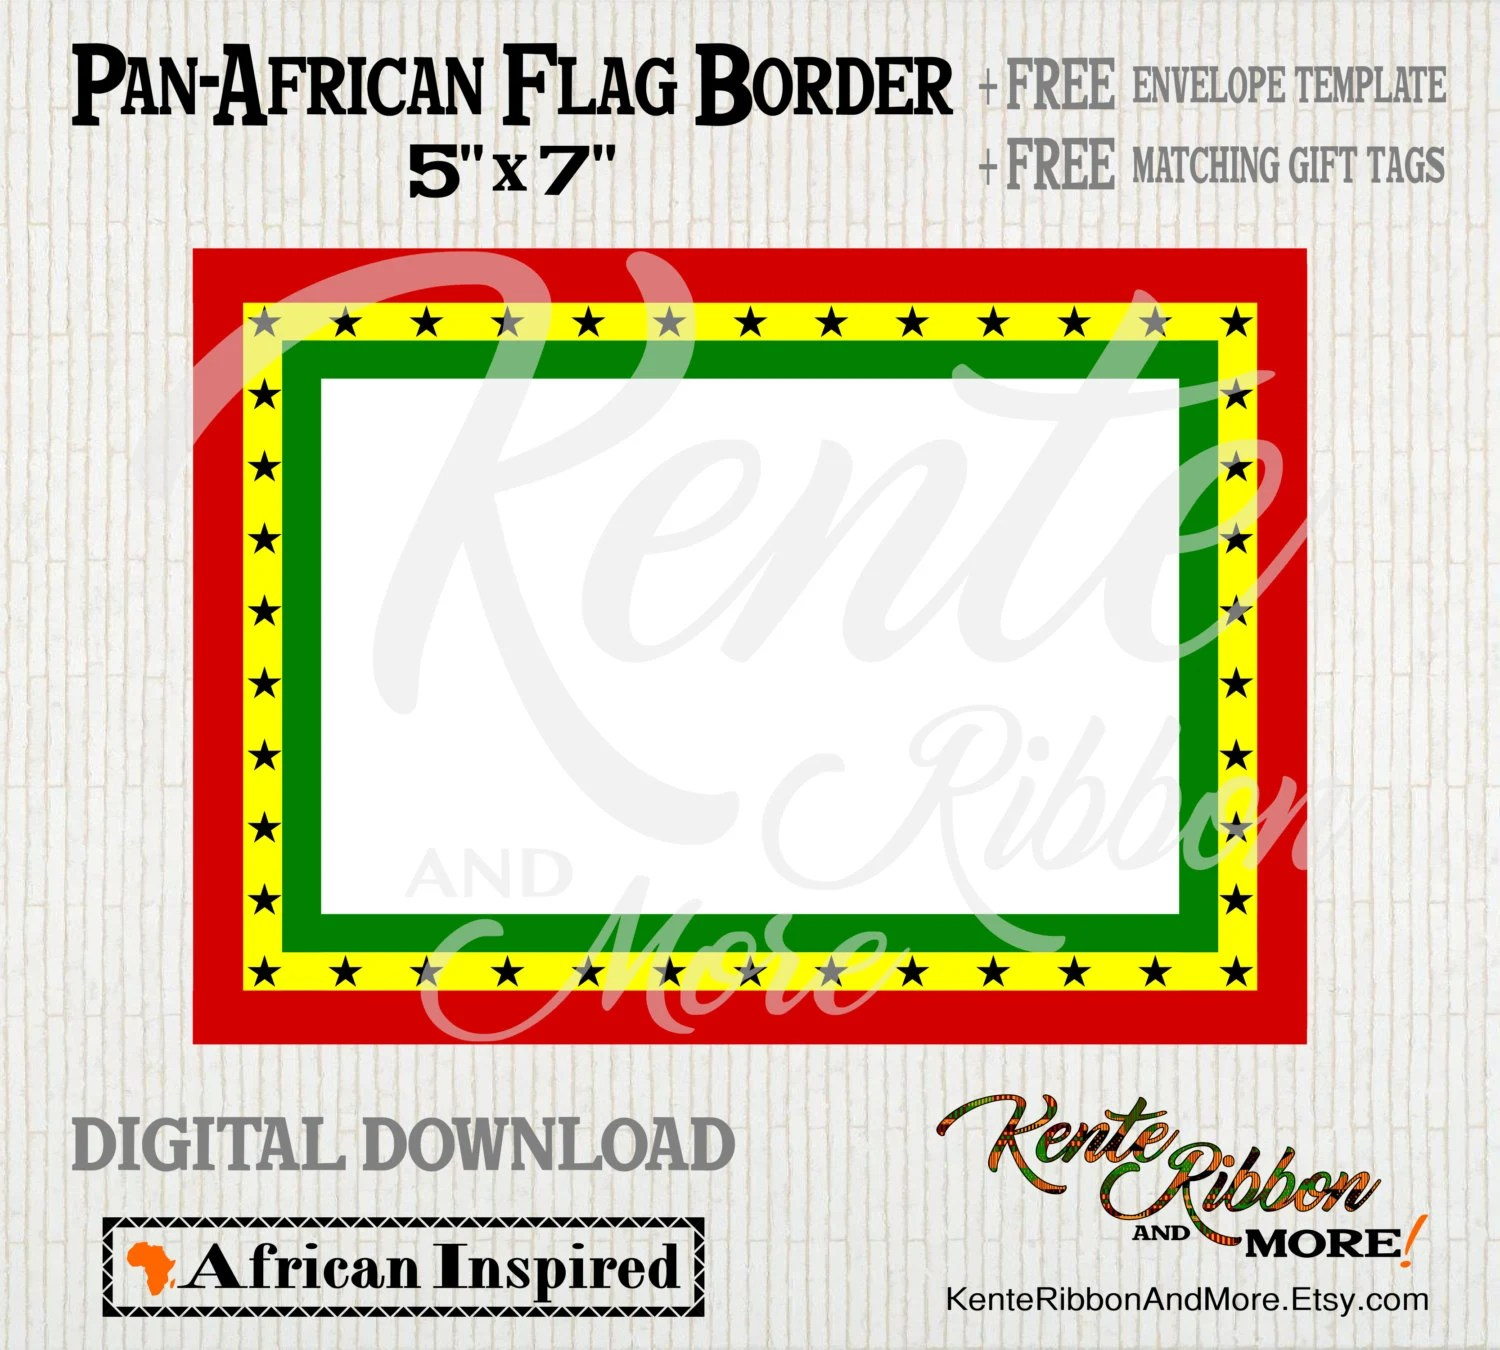 DIY - Printable Pan-African Ghana Flag 5x7 Border - 2-up on 85x11 - A7 Envelope Template